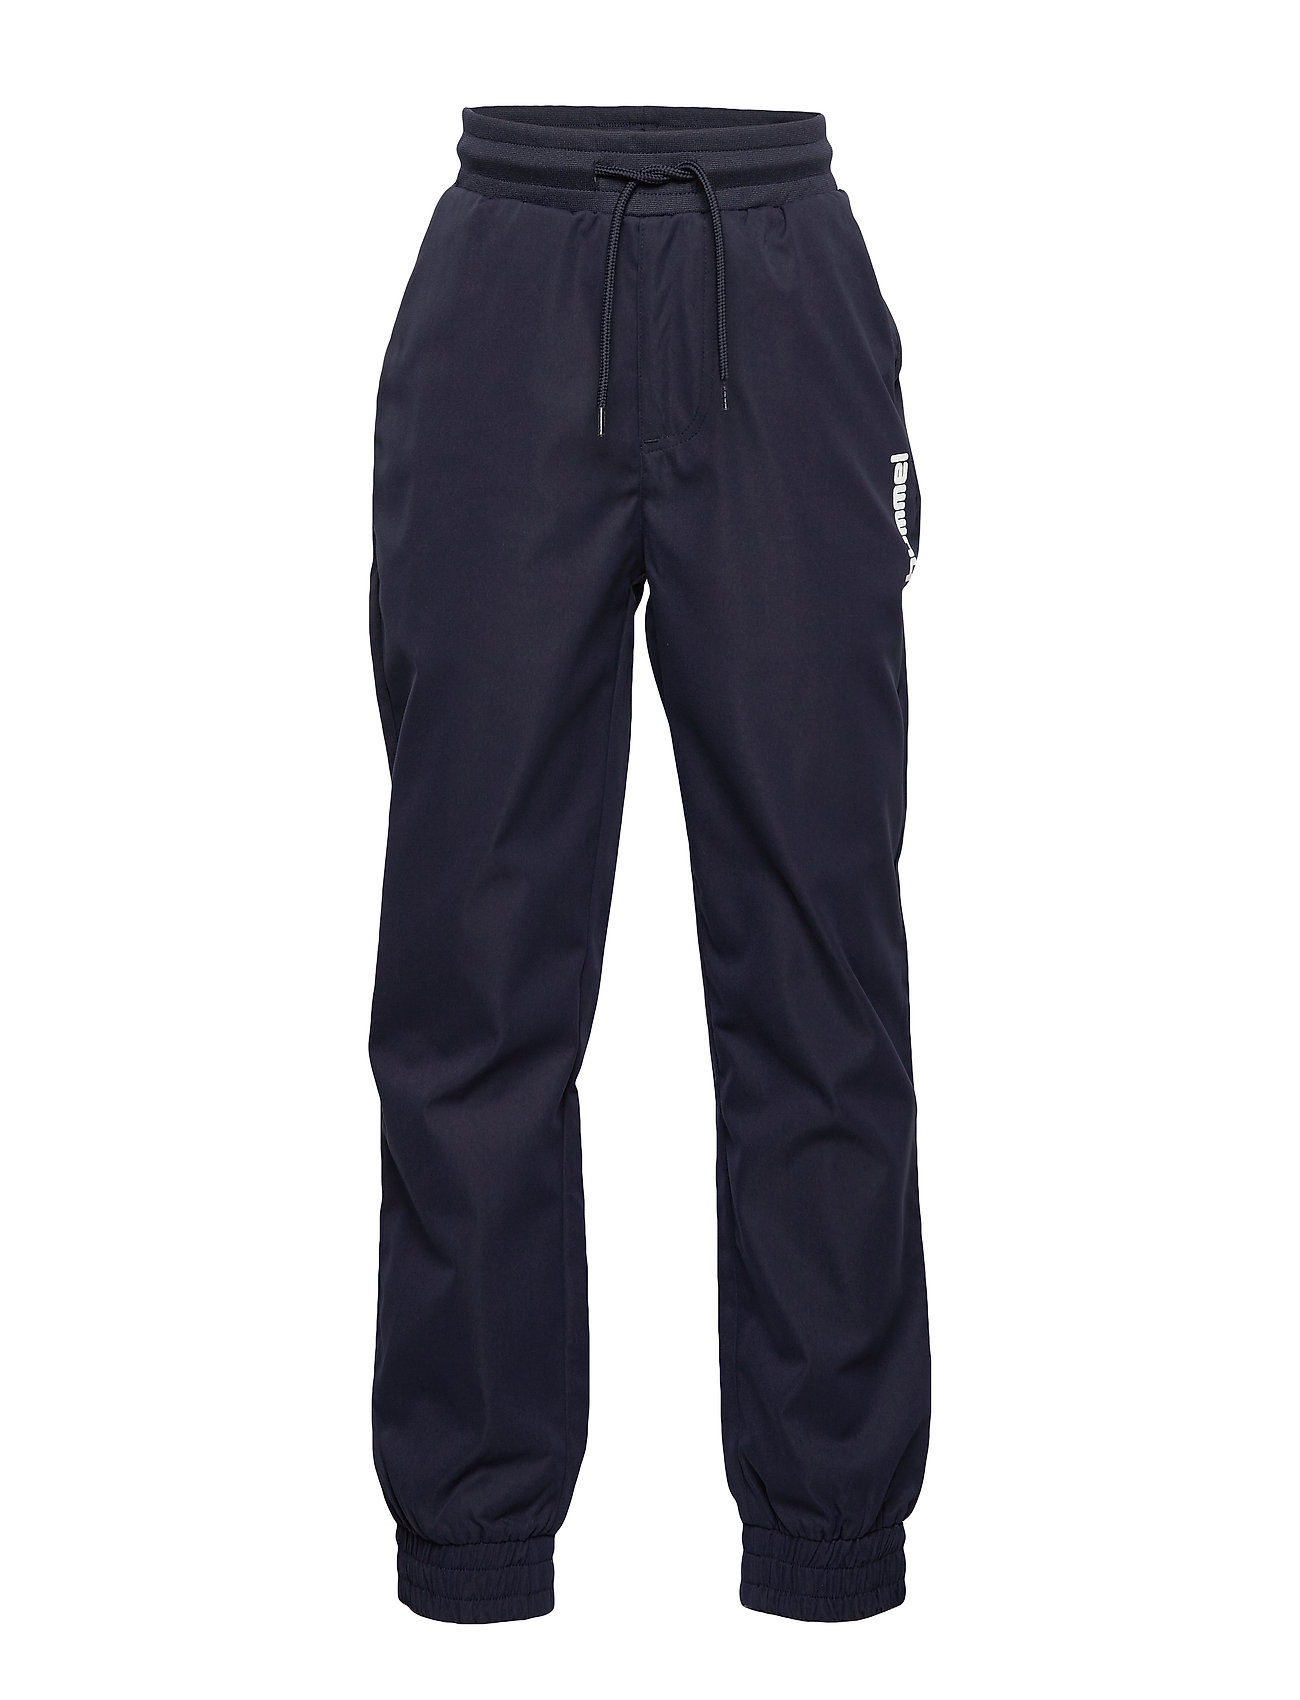 Hummel hmlGILBERT PANTS - NIGHT SKY